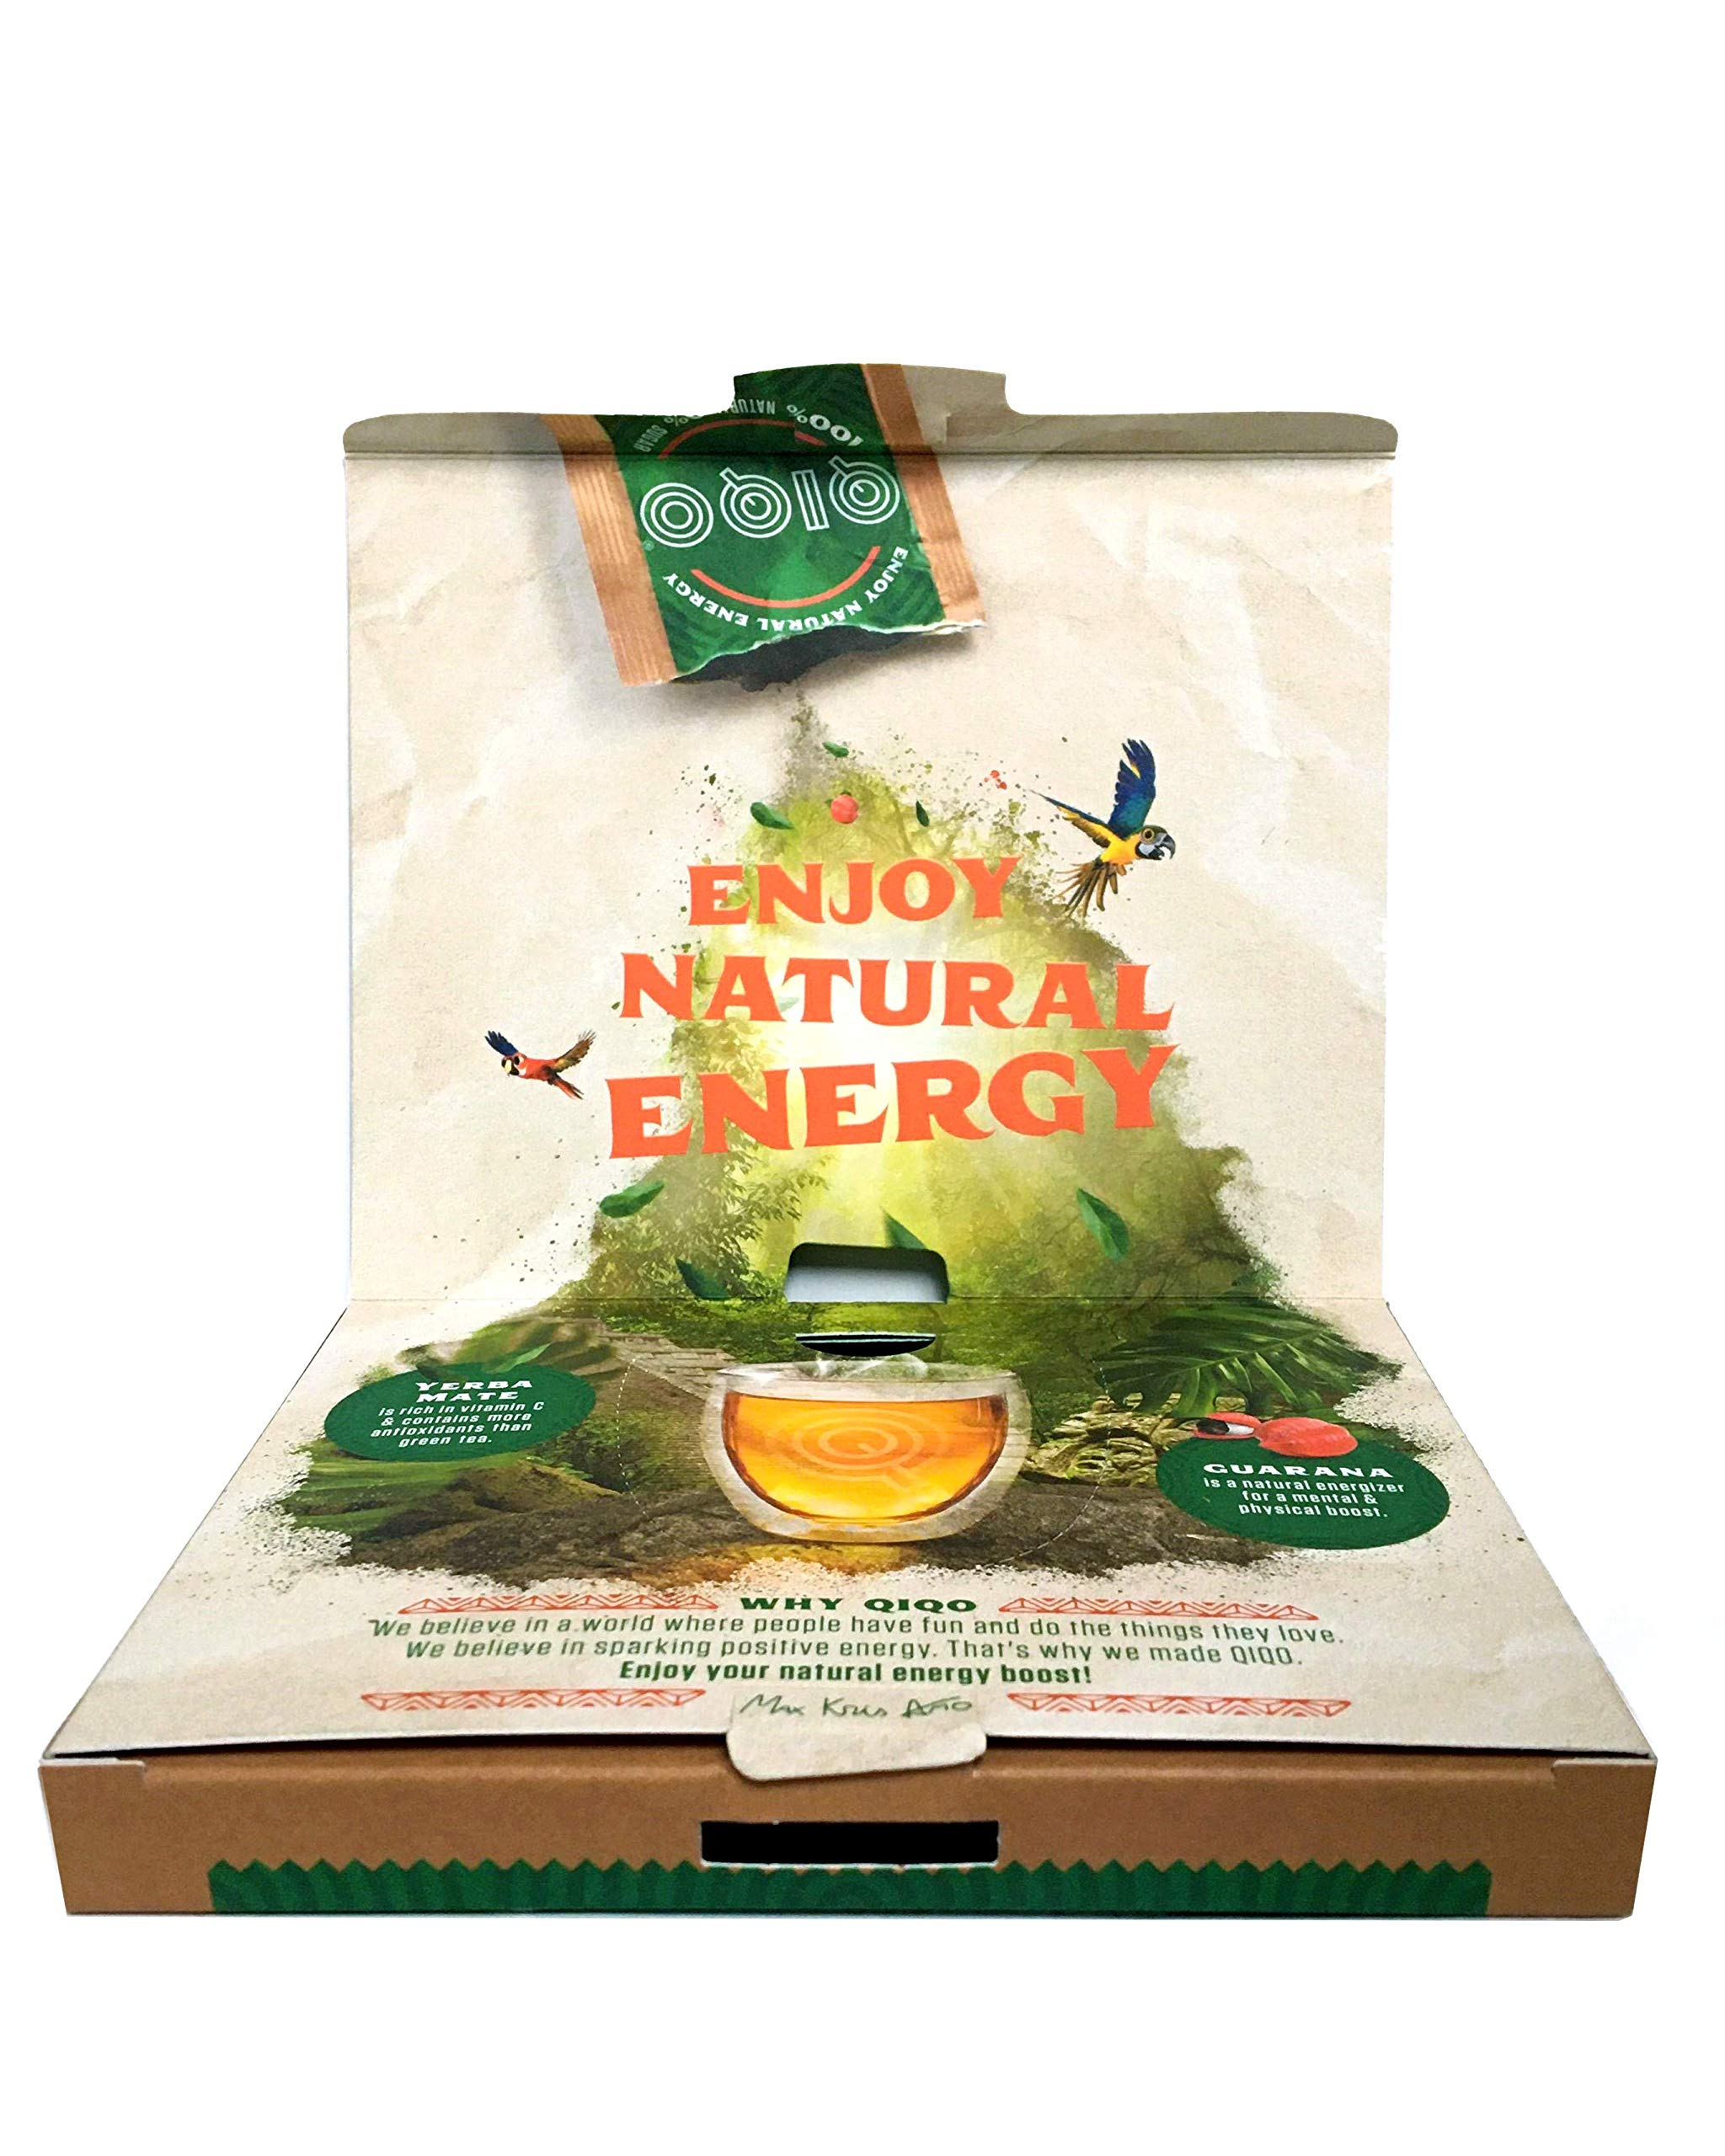 QIQO Natural Energy Tea with High Caffeine for Prolonged Energy & Focus, Zero Sugar. Ingredients Guarana & Yerba Mate with Antioxidants & Vitamin C. Instant Powder. Contains 14 Bags, Made in Belgium